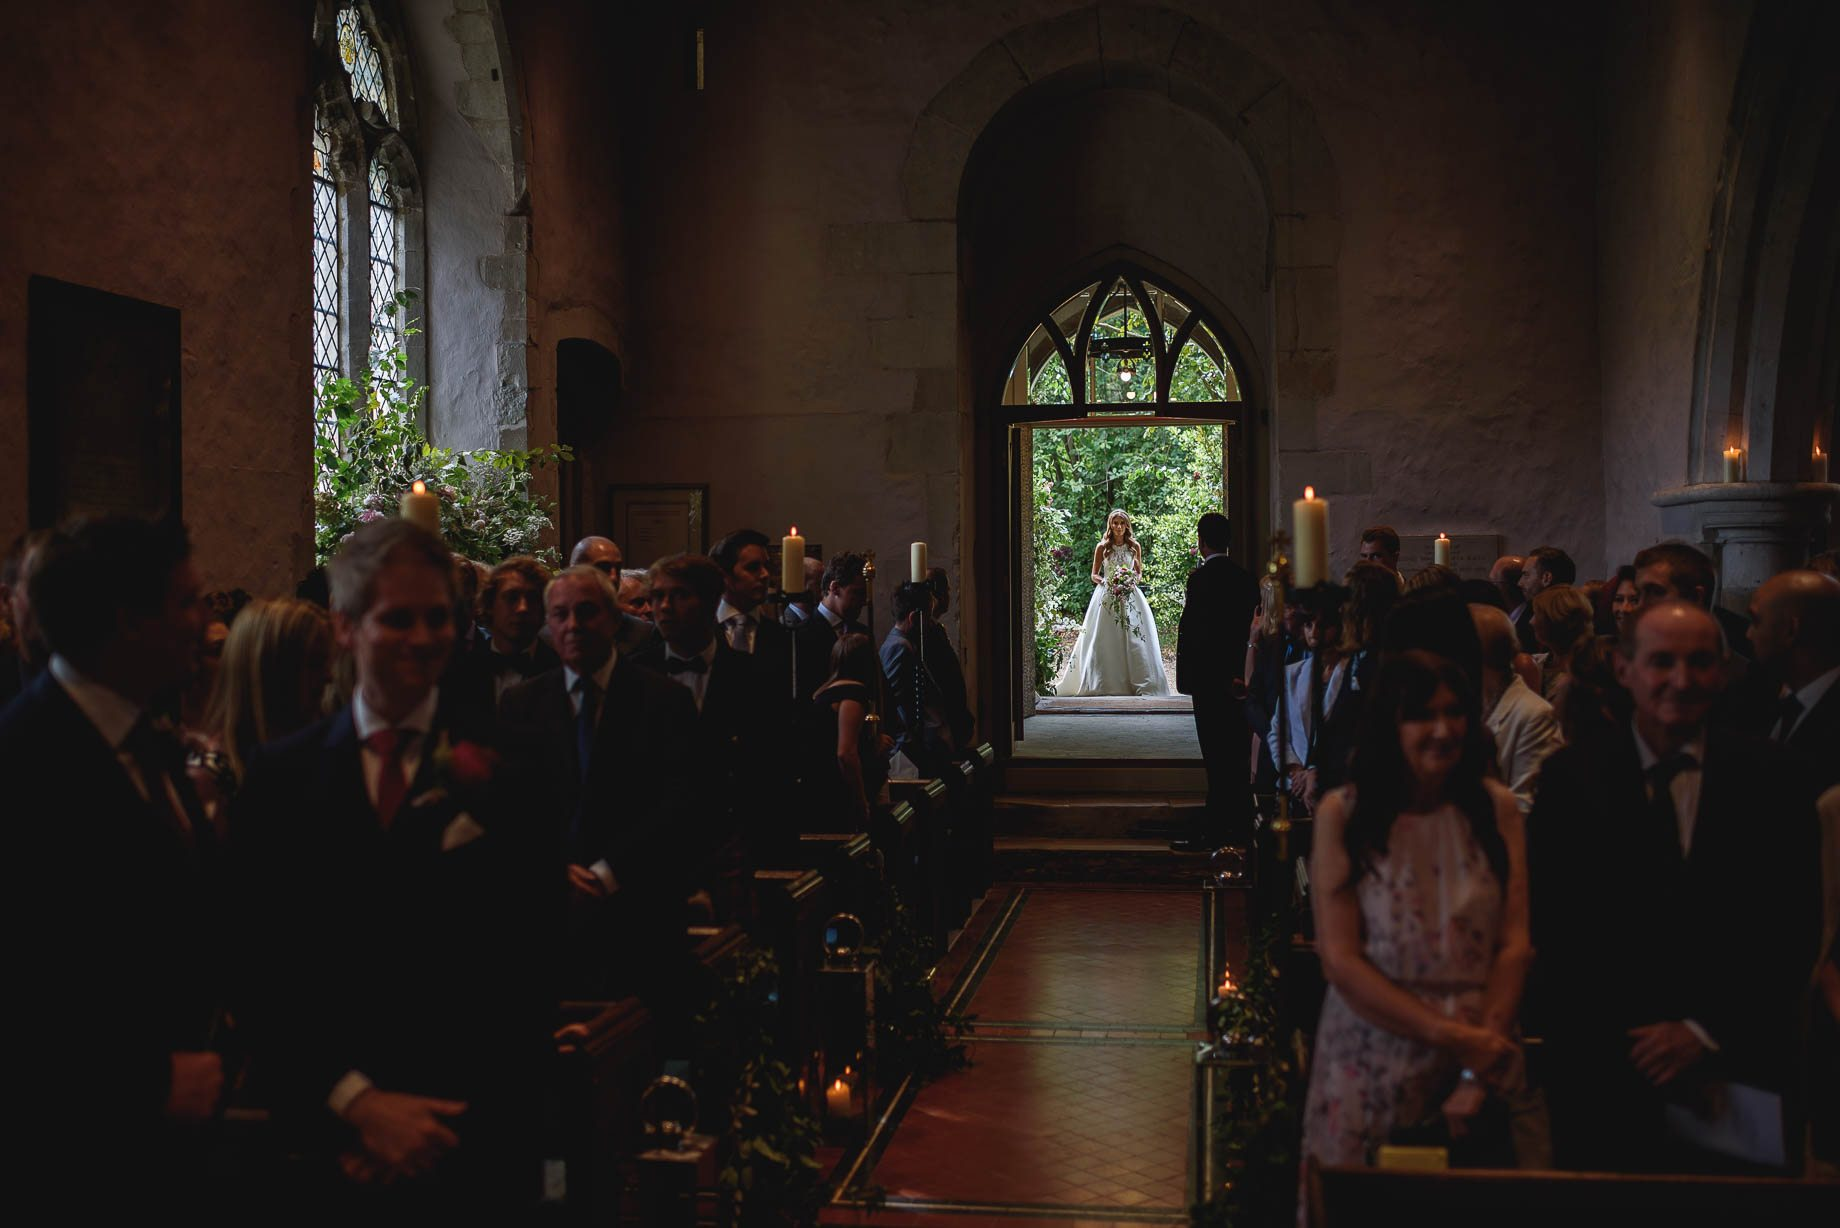 surrey-wedding-photography-guy-collier-photography-claire-and-tom-75-of-227